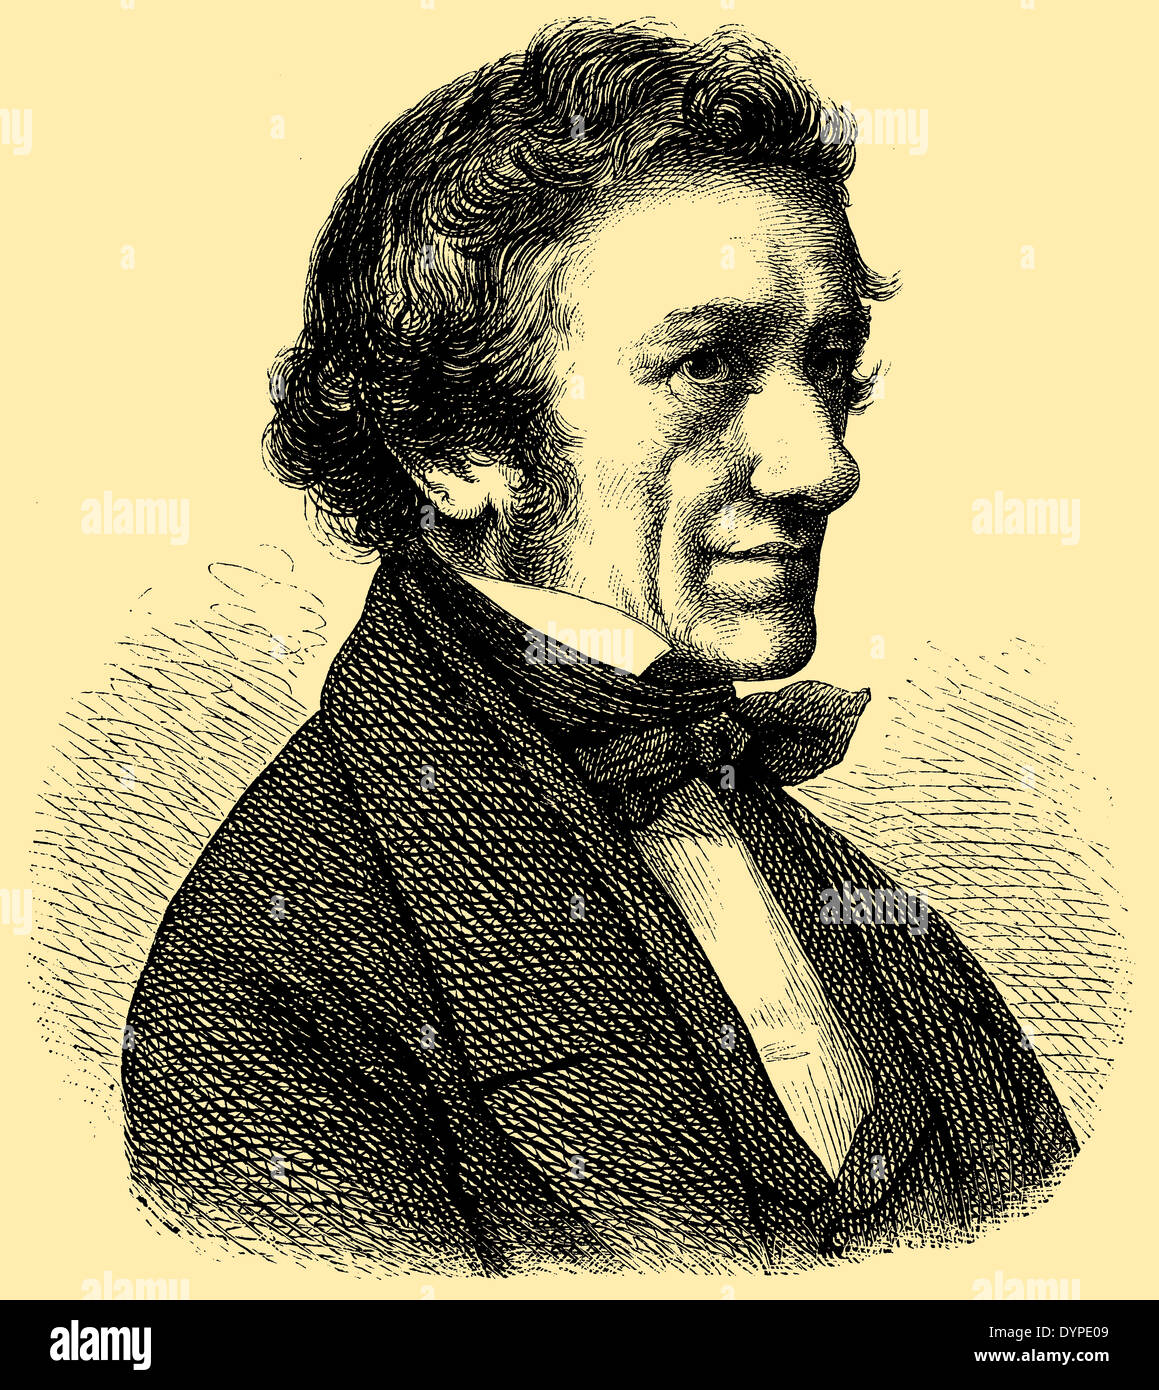 Ernst Rietschel (born December 15, 1804, died February 21, 1861) - Stock Image